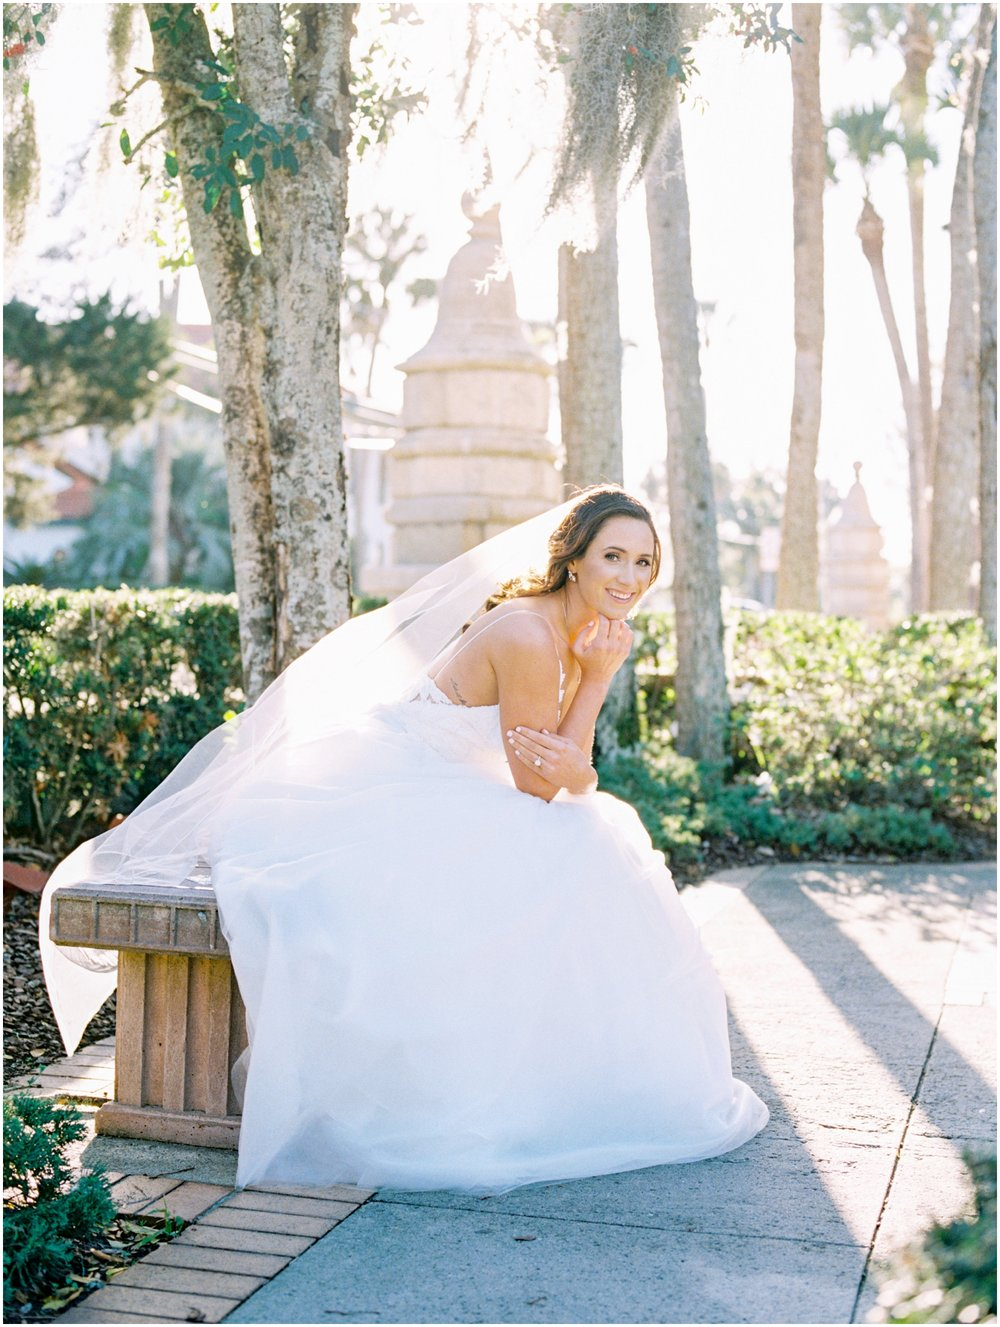 Lisa Silva Photography -Bridal Portrait Session in St. Augustine, Florida- Jacksonville and North East Florida Fine Art Film Photographer_0015.jpg